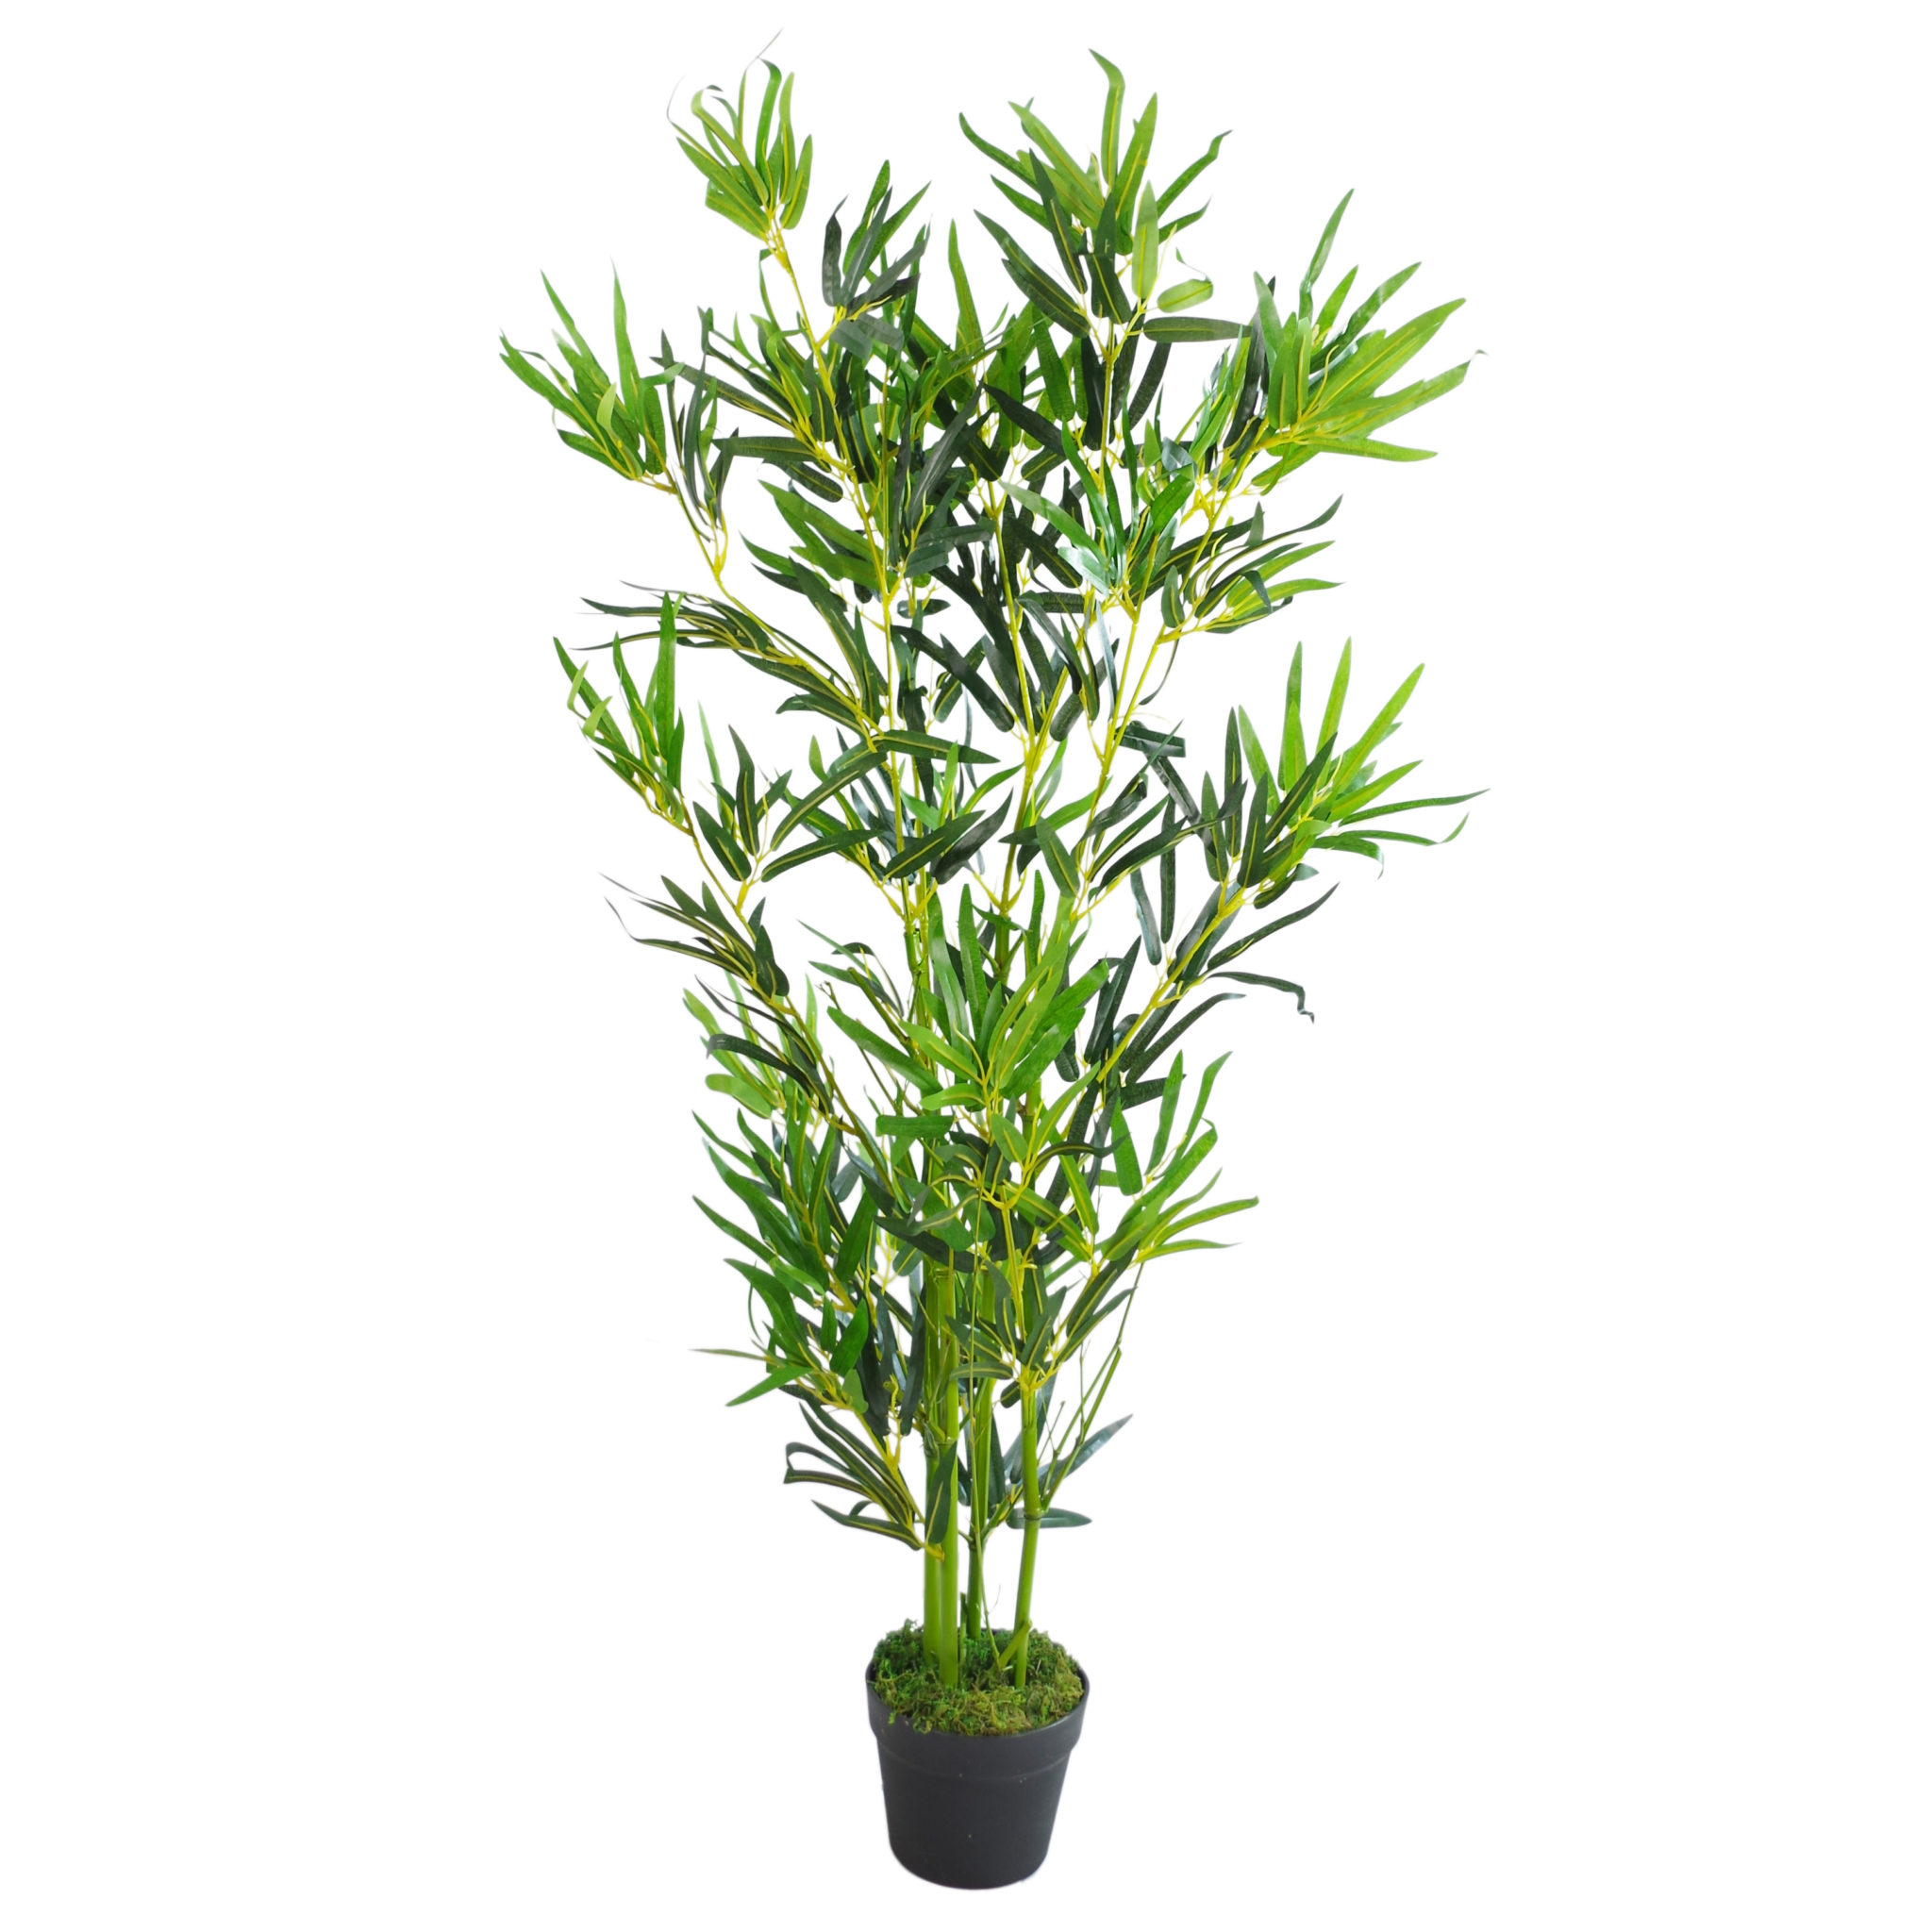 Bamboo Pants Uk: 120cm (4ft) Fat Leaf Artificial Bamboo Plants Trees